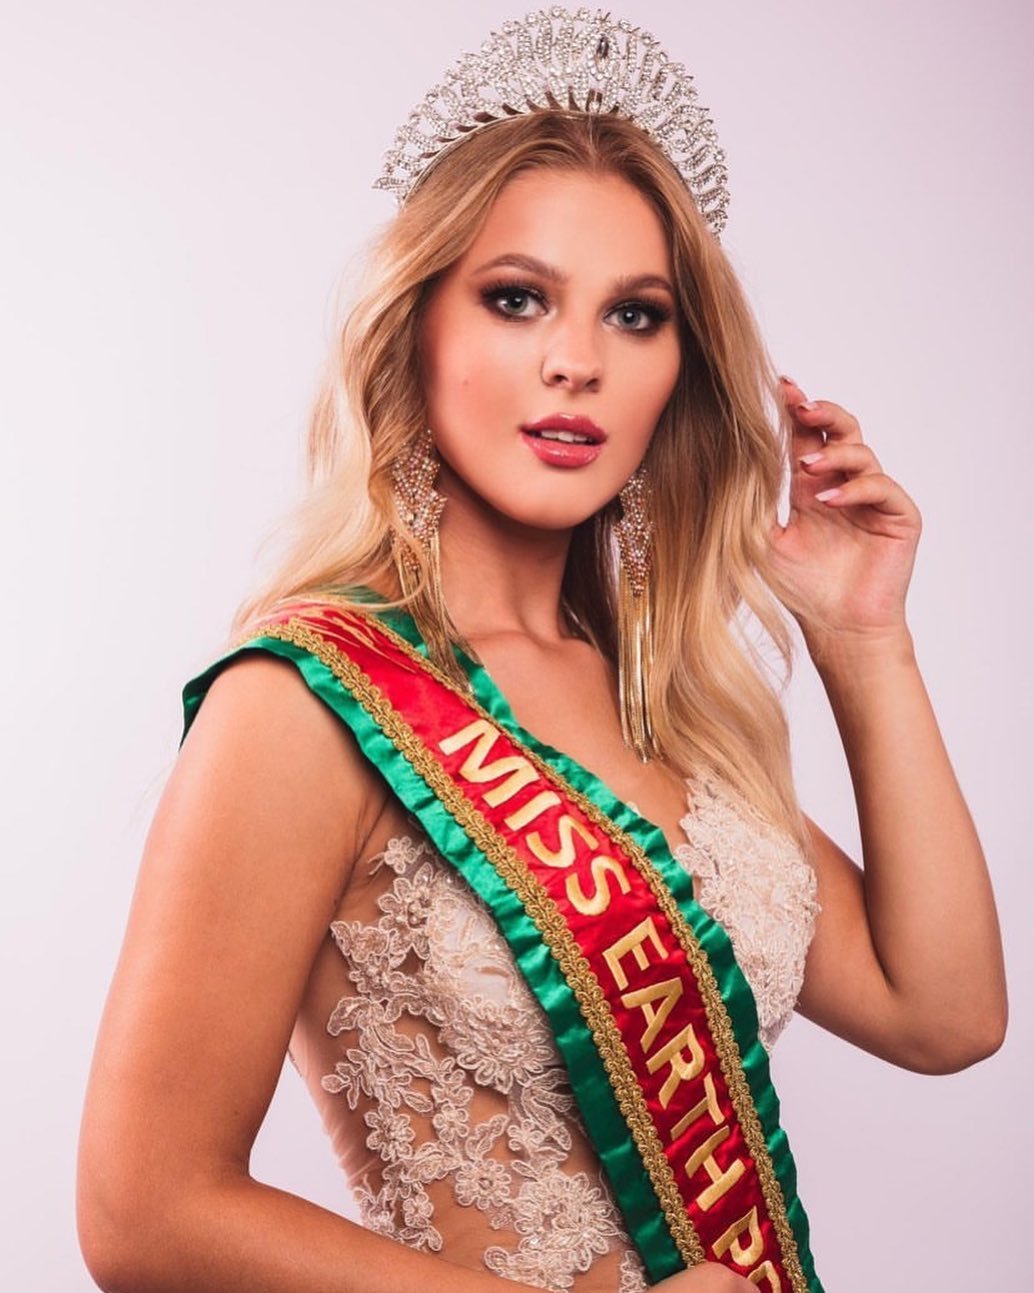 ivanna rohashko, miss earth portugal 2020.  Lw5y7phu